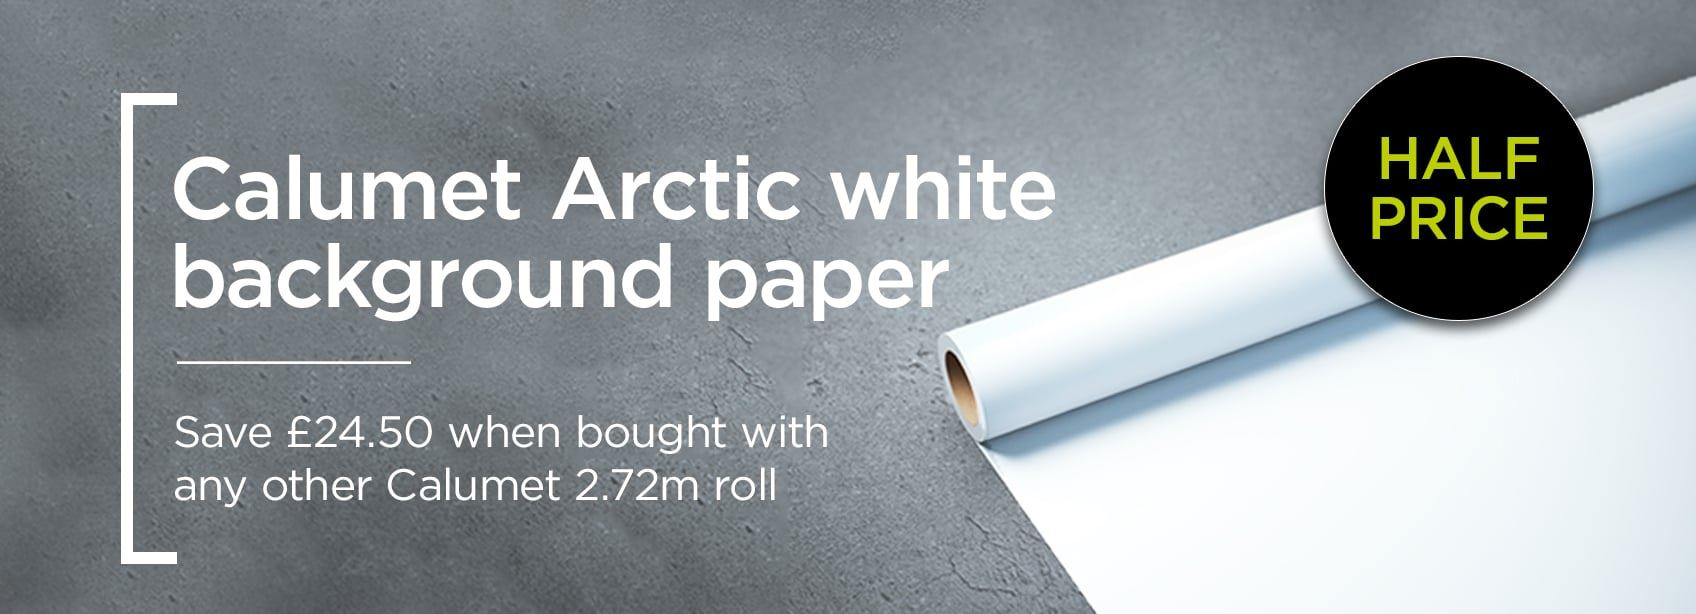 Calumet Arctic White Paper Background offer: Get Second Roll Half Price!